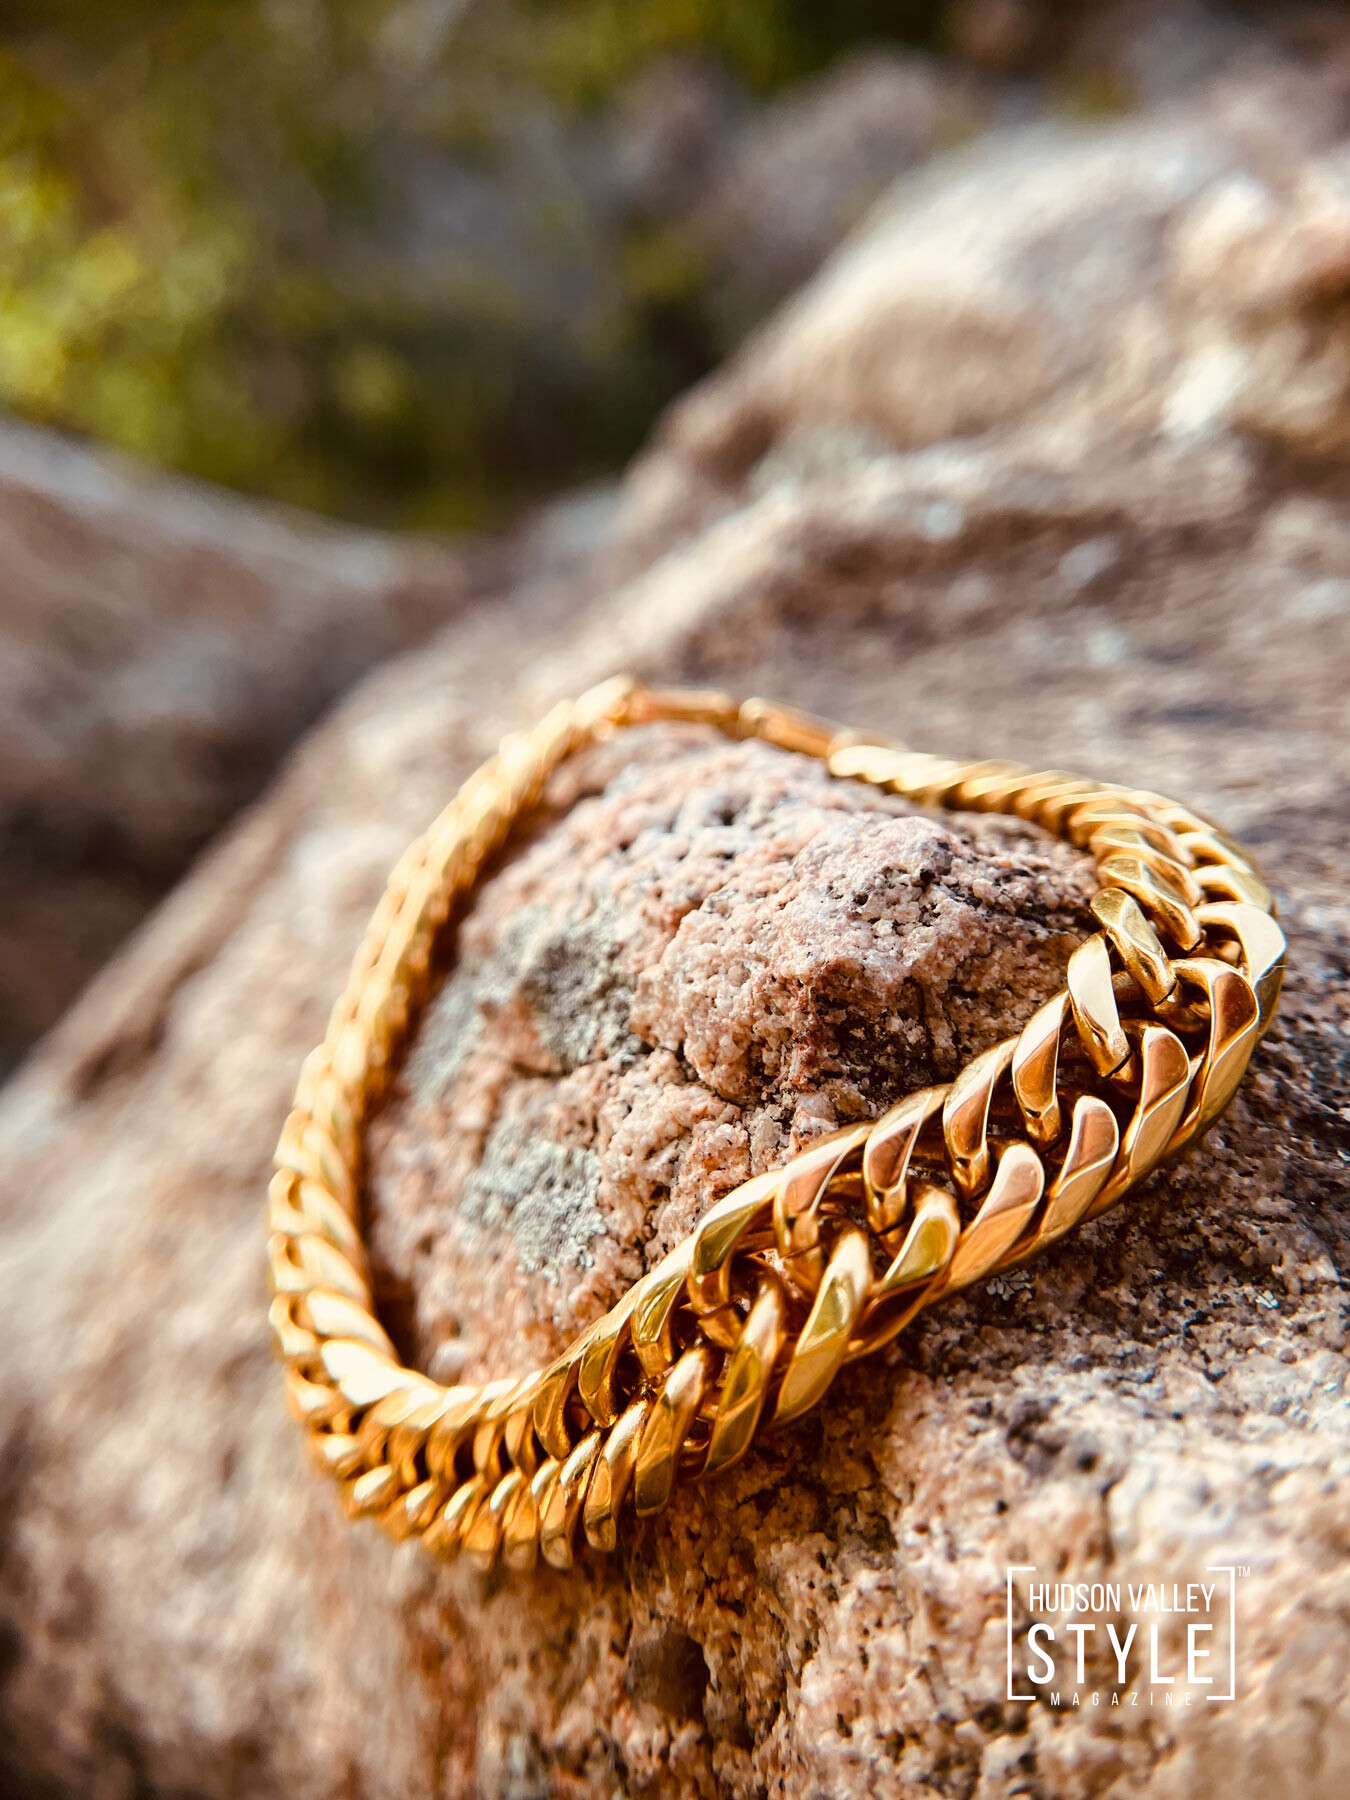 2021 Men's Fashion Trend: Bracelets to Elevate Style and Boost Confidence – Presented by HARD NEW YORK